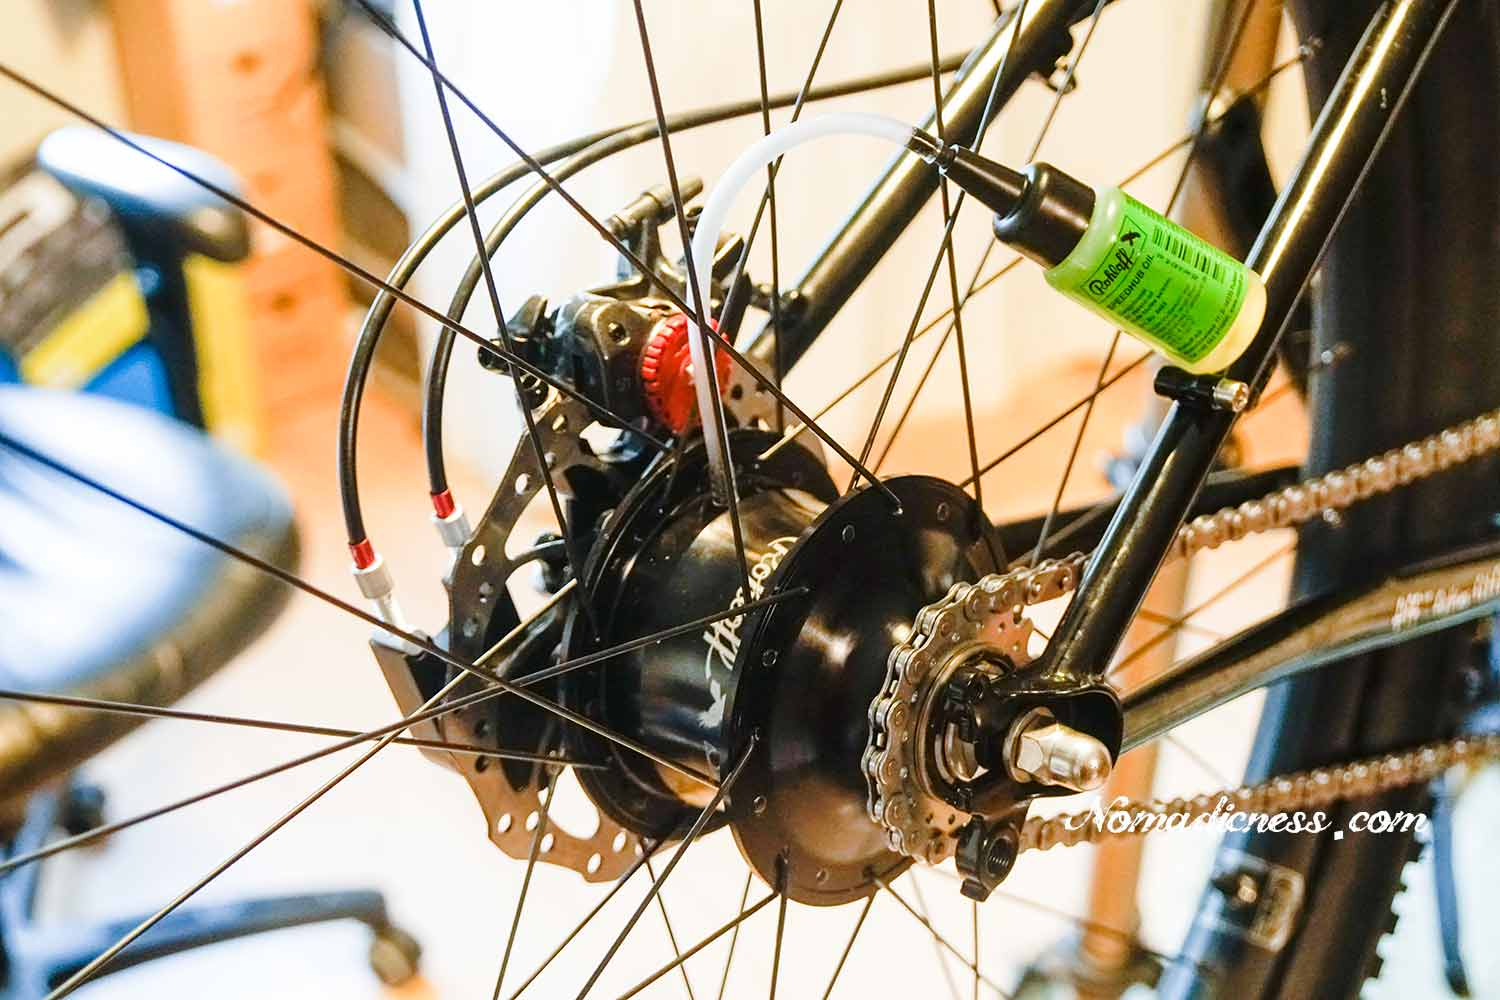 Rohloff Speedhub is filled with oil